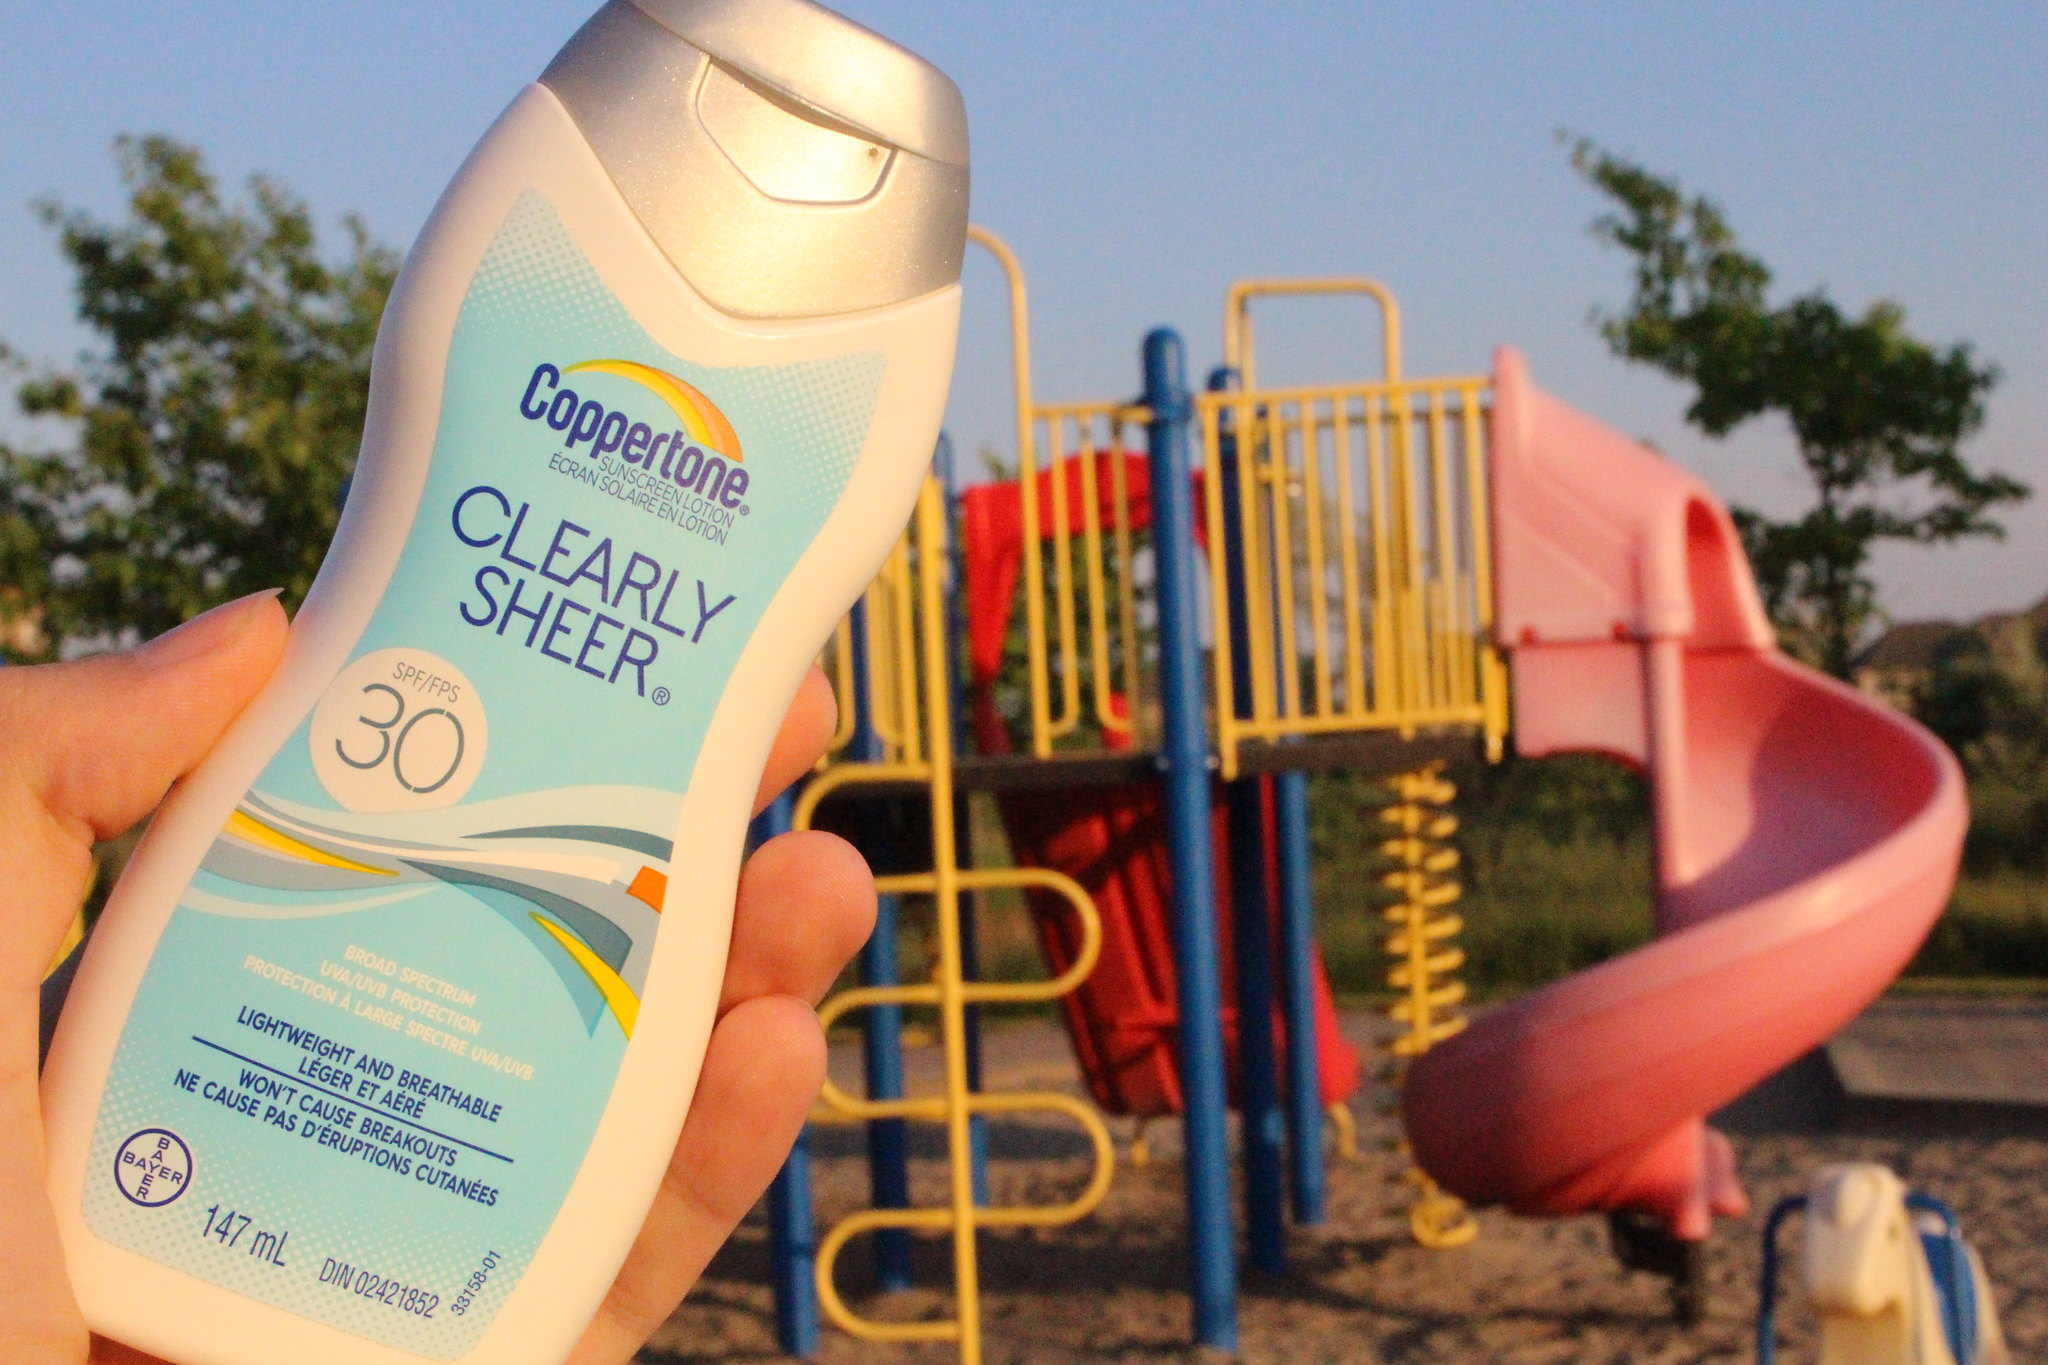 Coppertone ClearlySheer Body Lotion